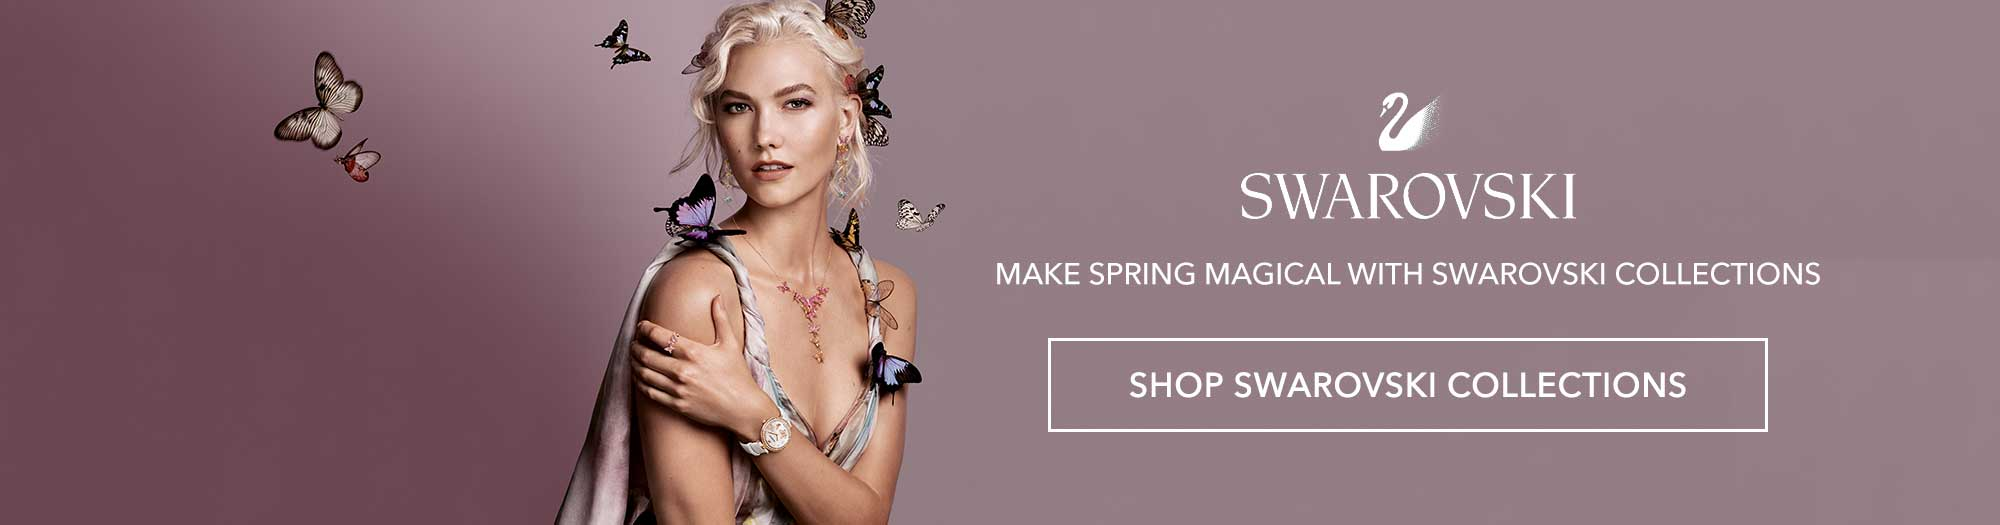 Swarovski Collections - Spring